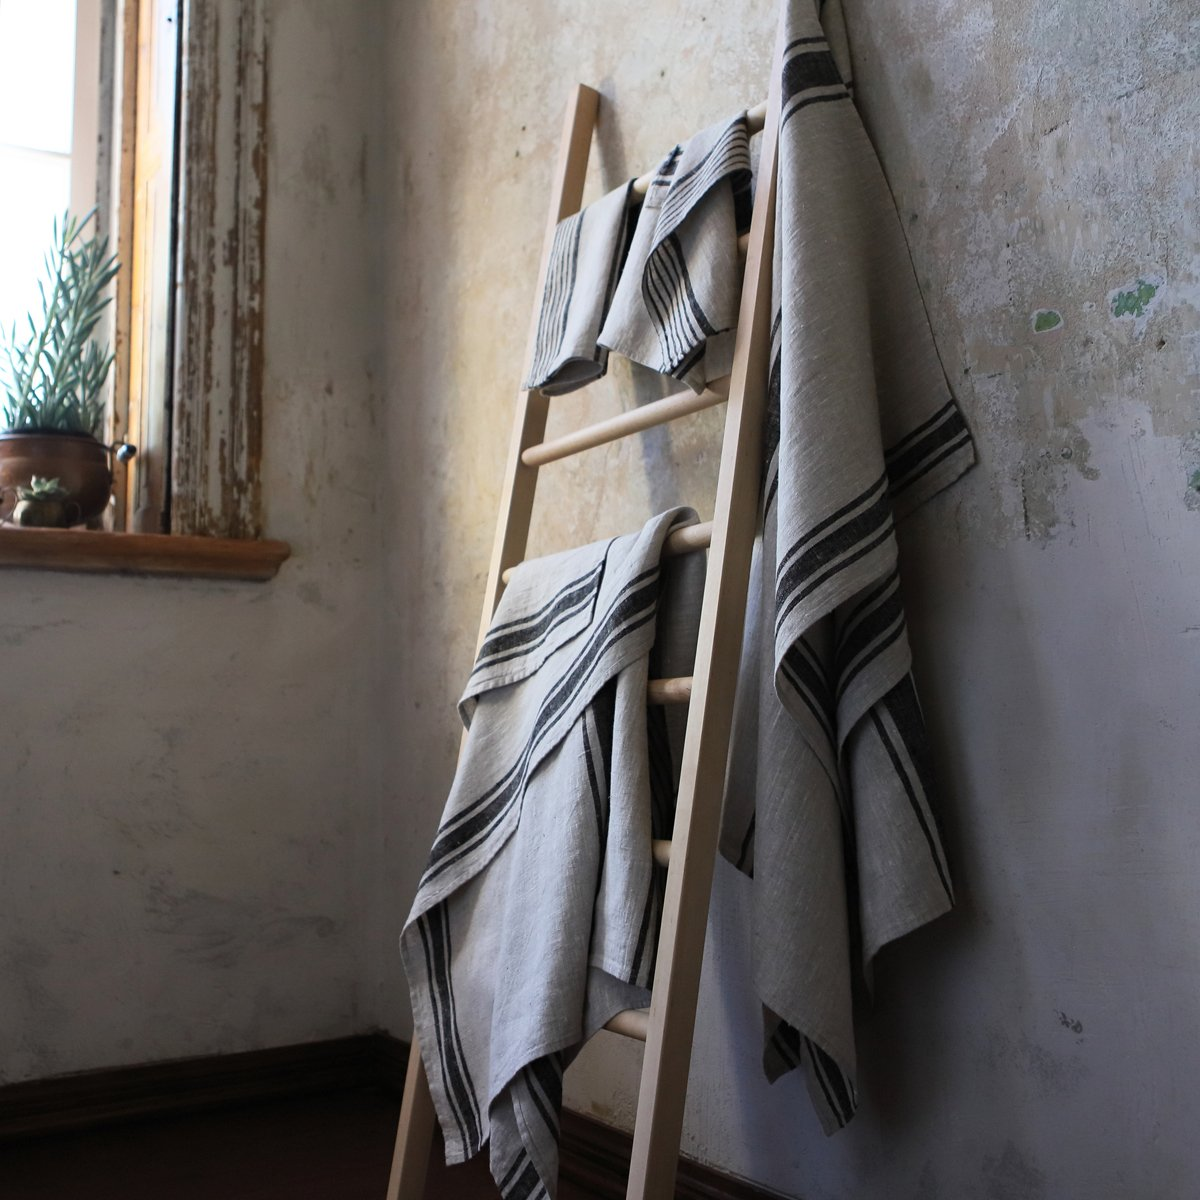 Provence striped French linen hand towel - made in Europe. #frenchlinen #linentowel #handtowels #stripetowel